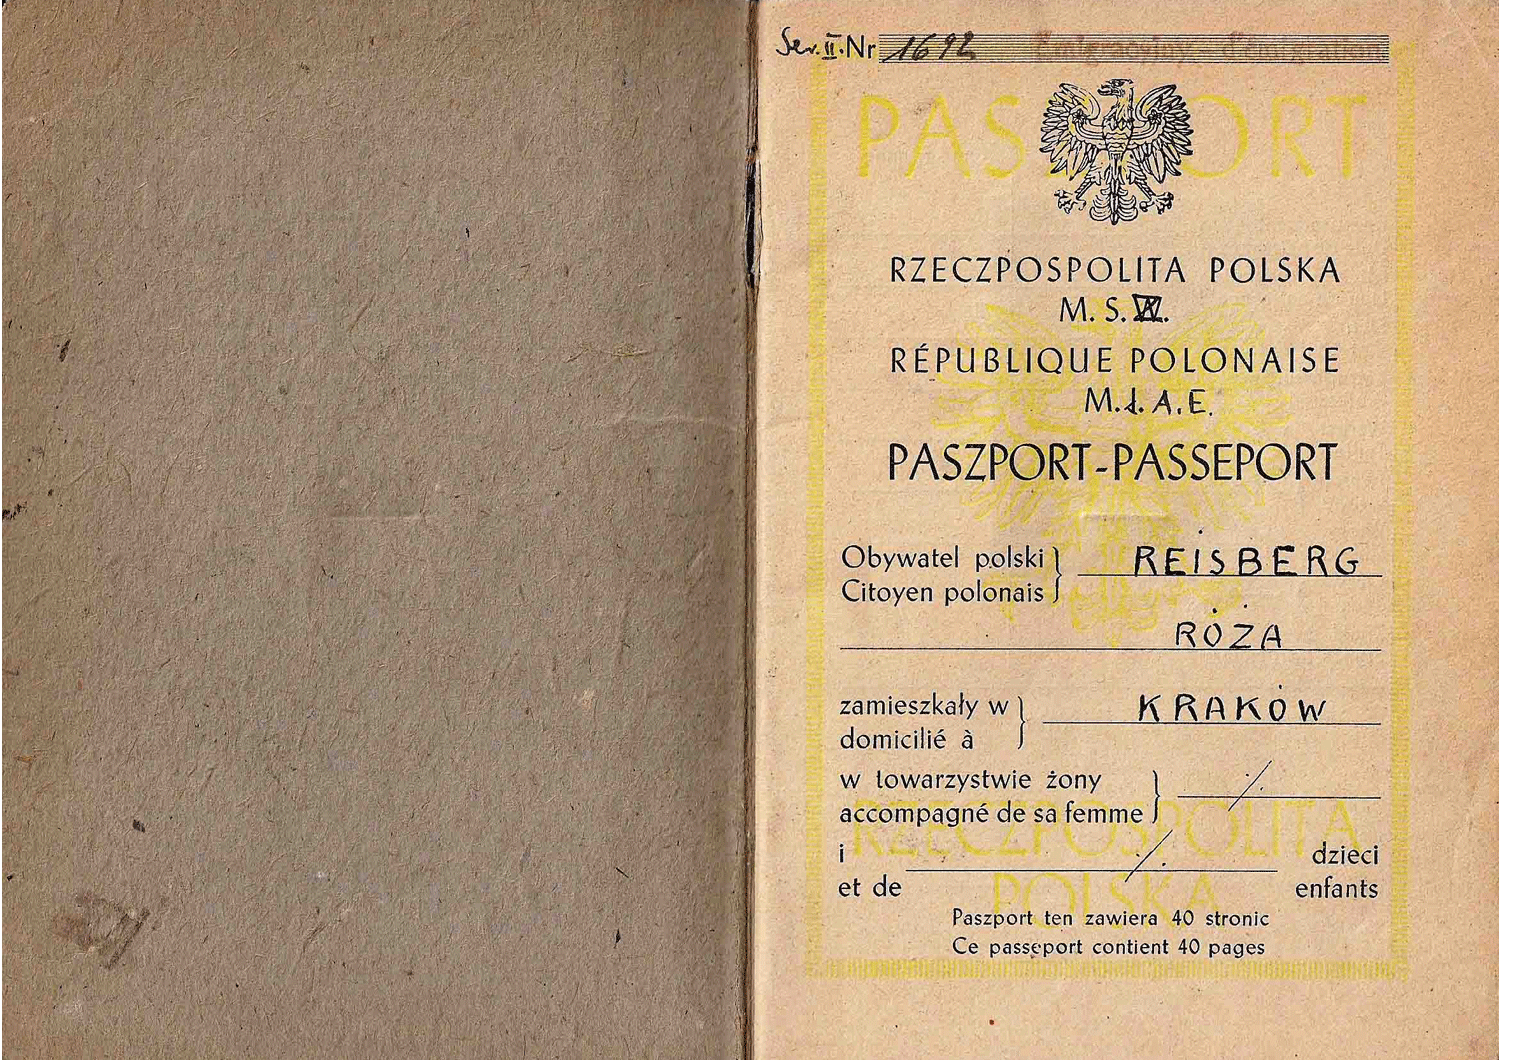 WW2 Polish passport